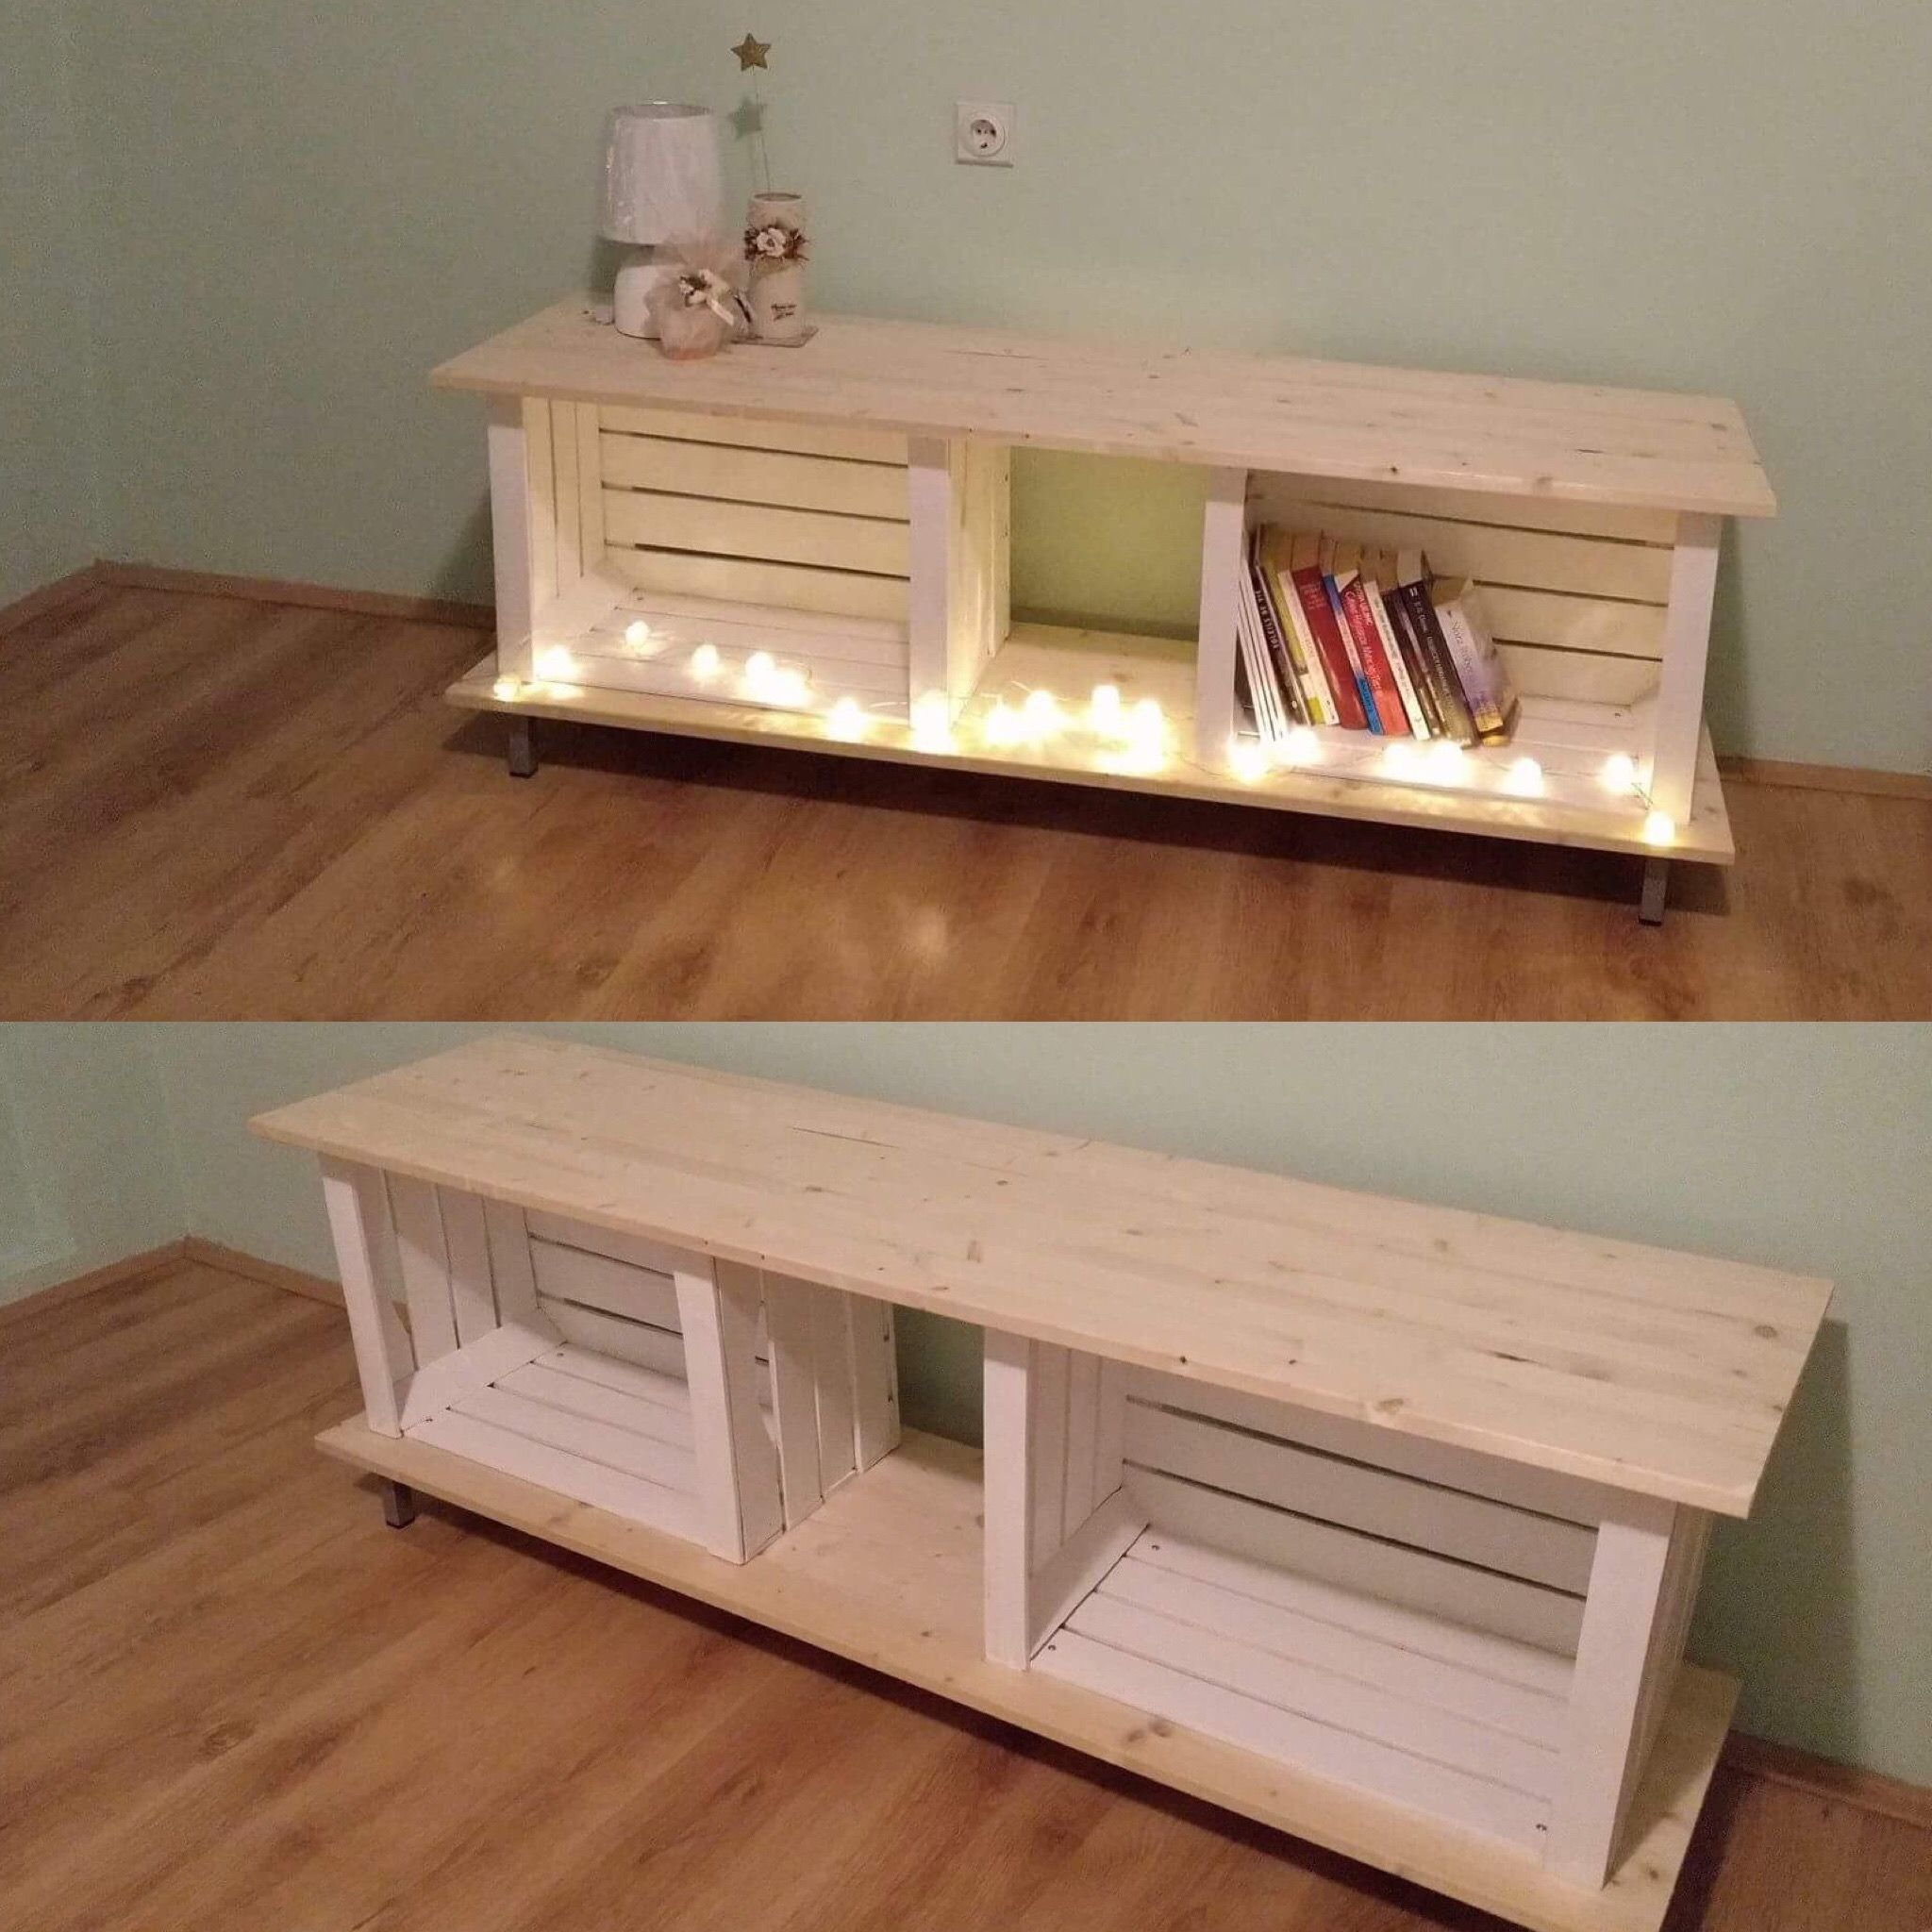 Cheap Wooden Crates Our First Diy Project Wooden Crates Pinterest Inspired Tv